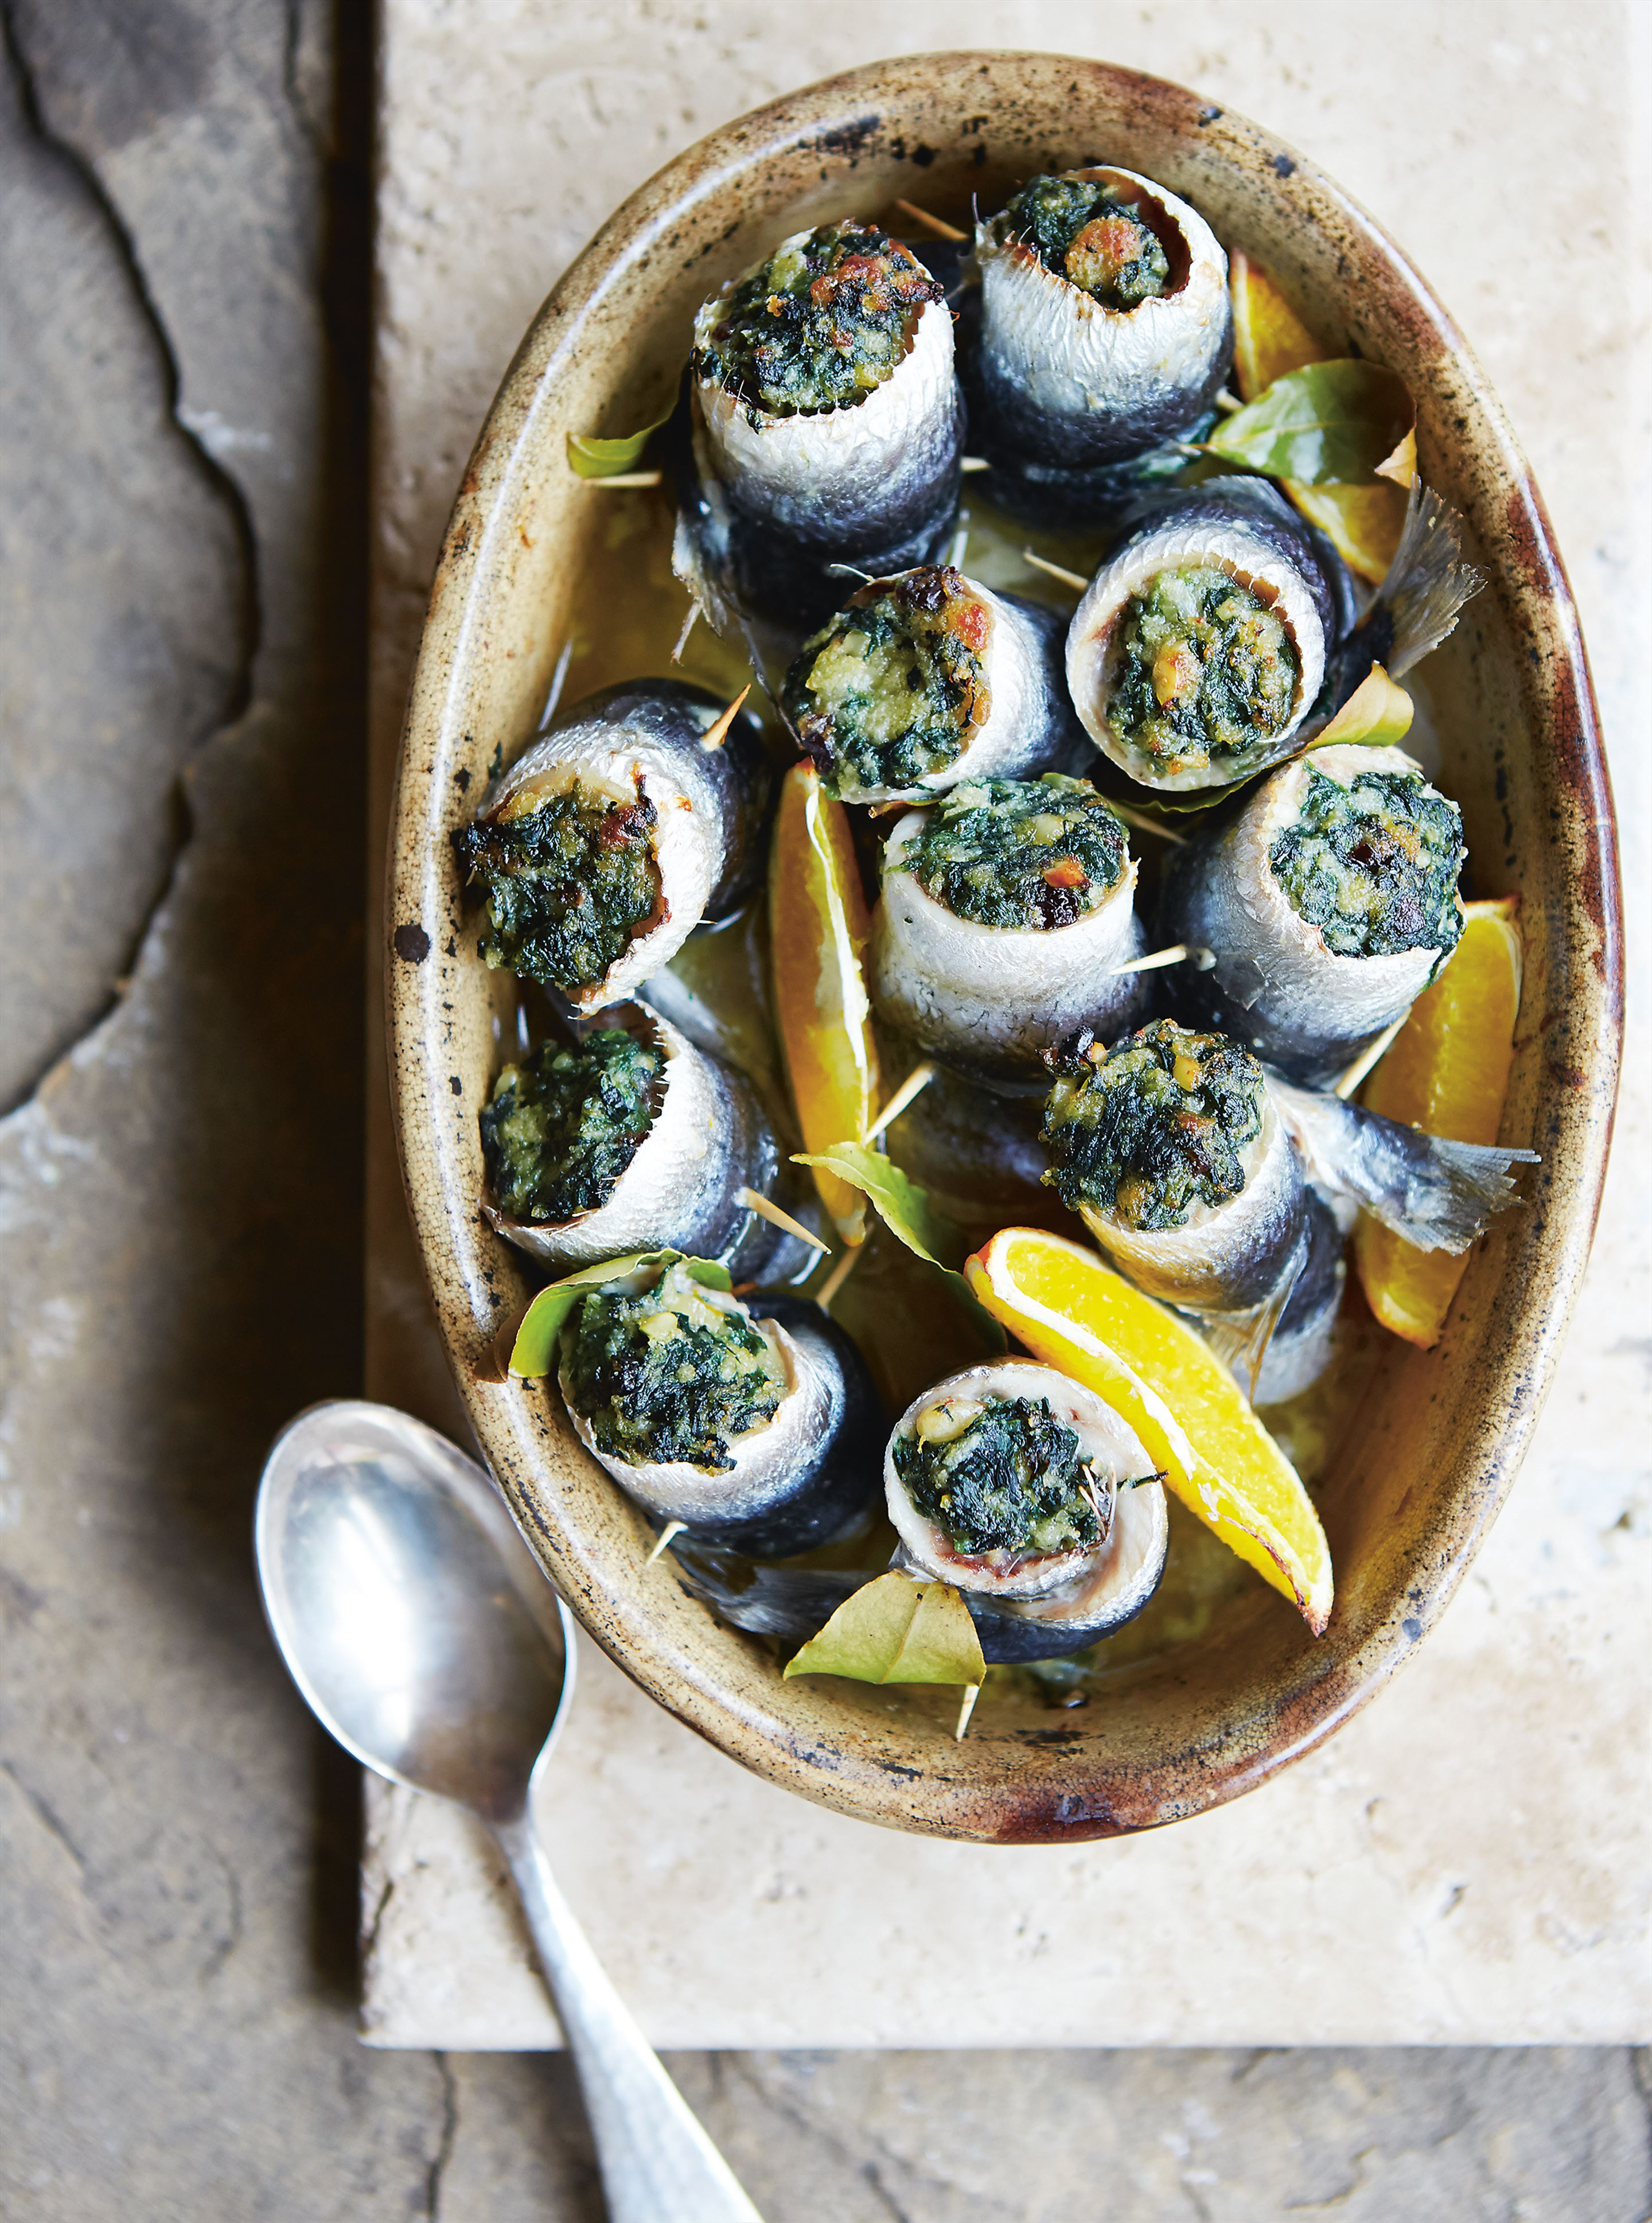 Stuffed sardines with spinach, pine nuts & raisins